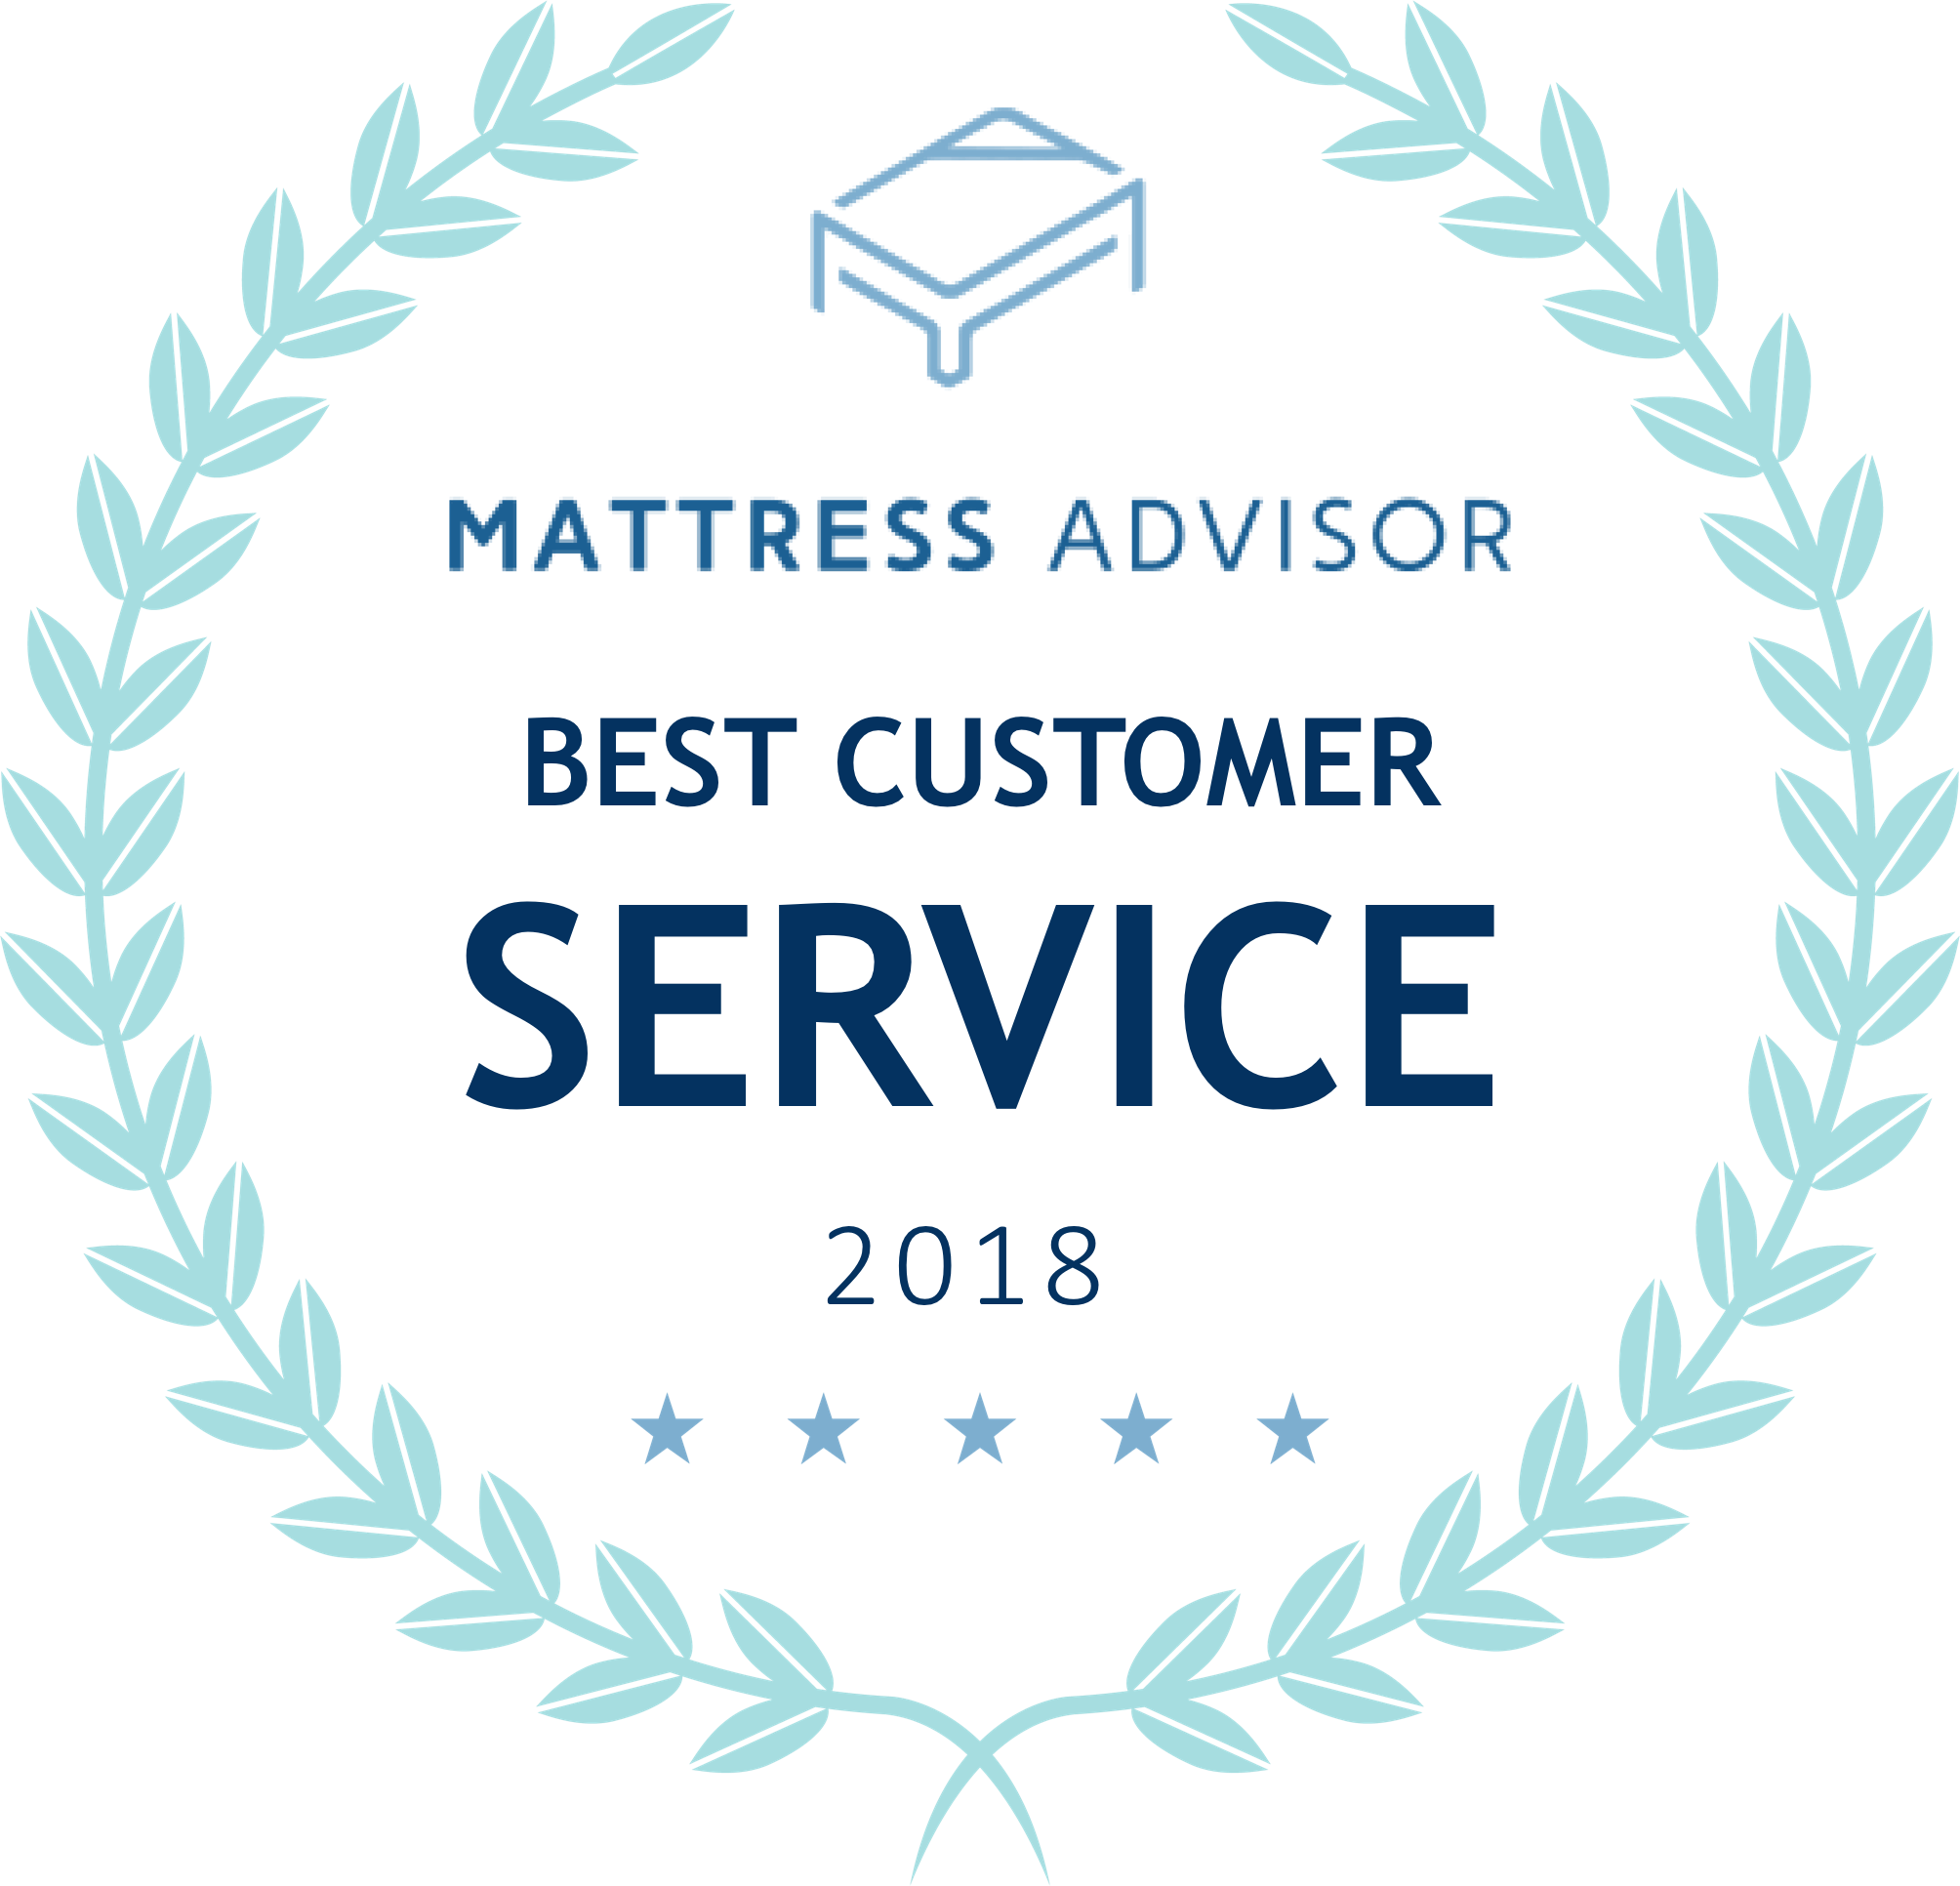 Best Customer Service 2018 Badge